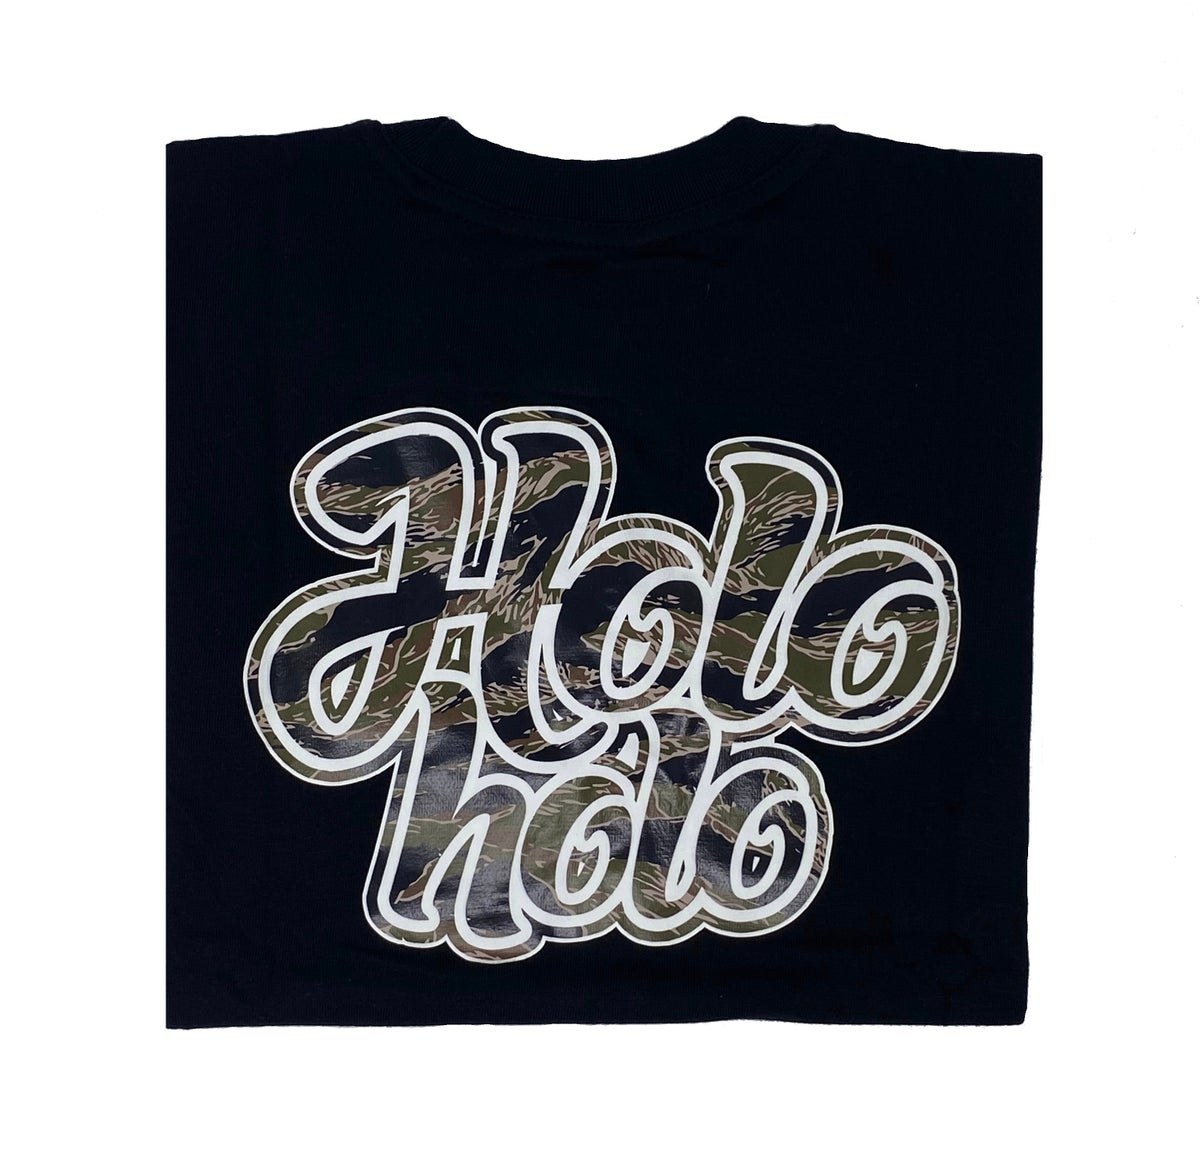 Image of Adult Always Ready/Tiger Holo Holo Tee